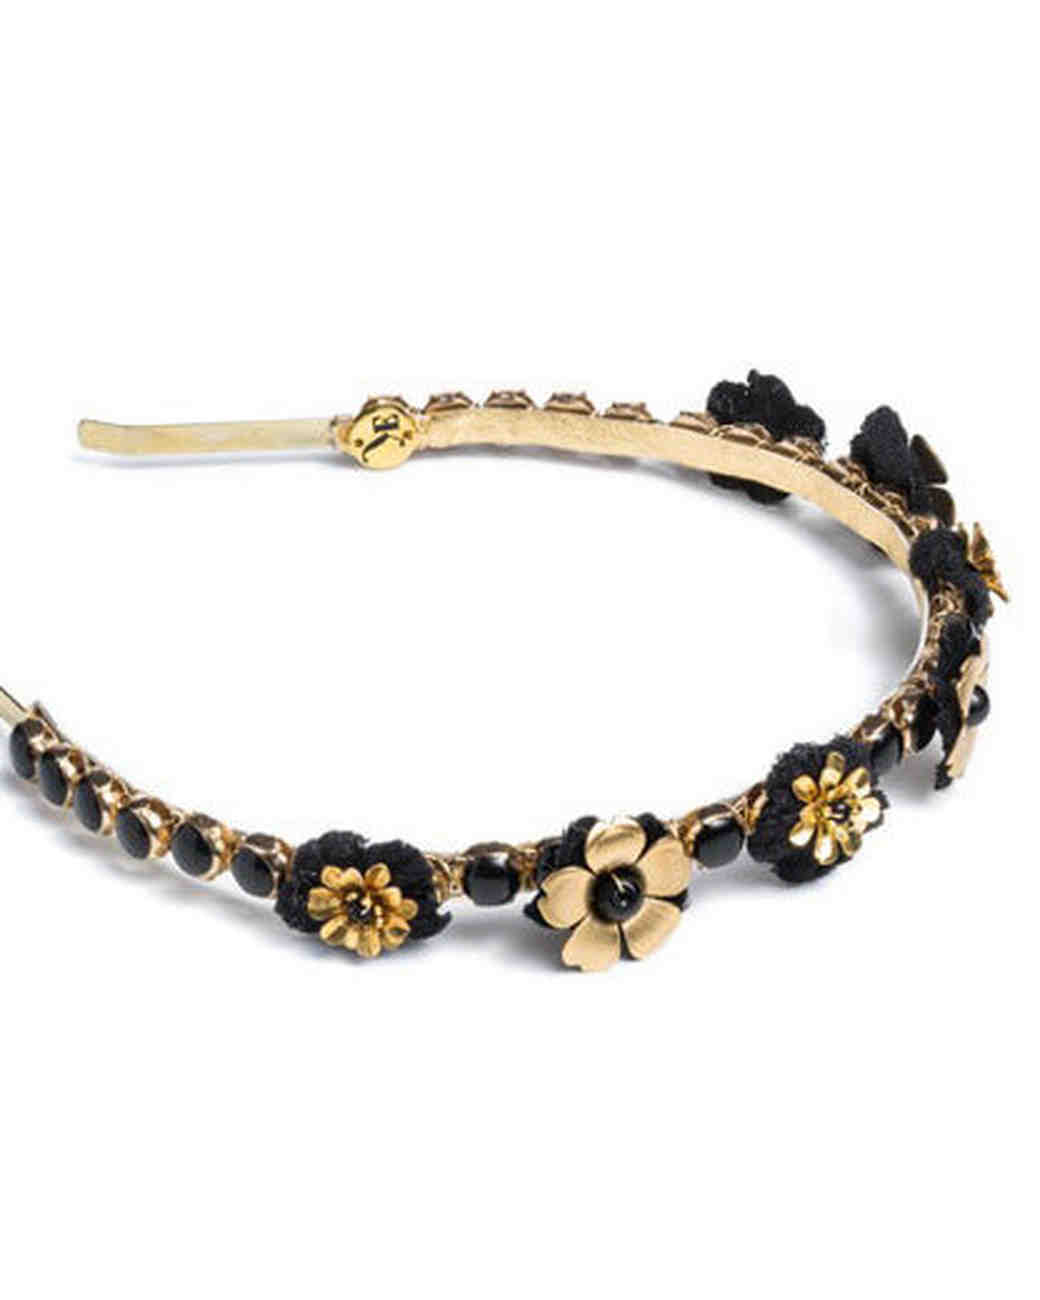 Eugenia Kim black and gold floral headband